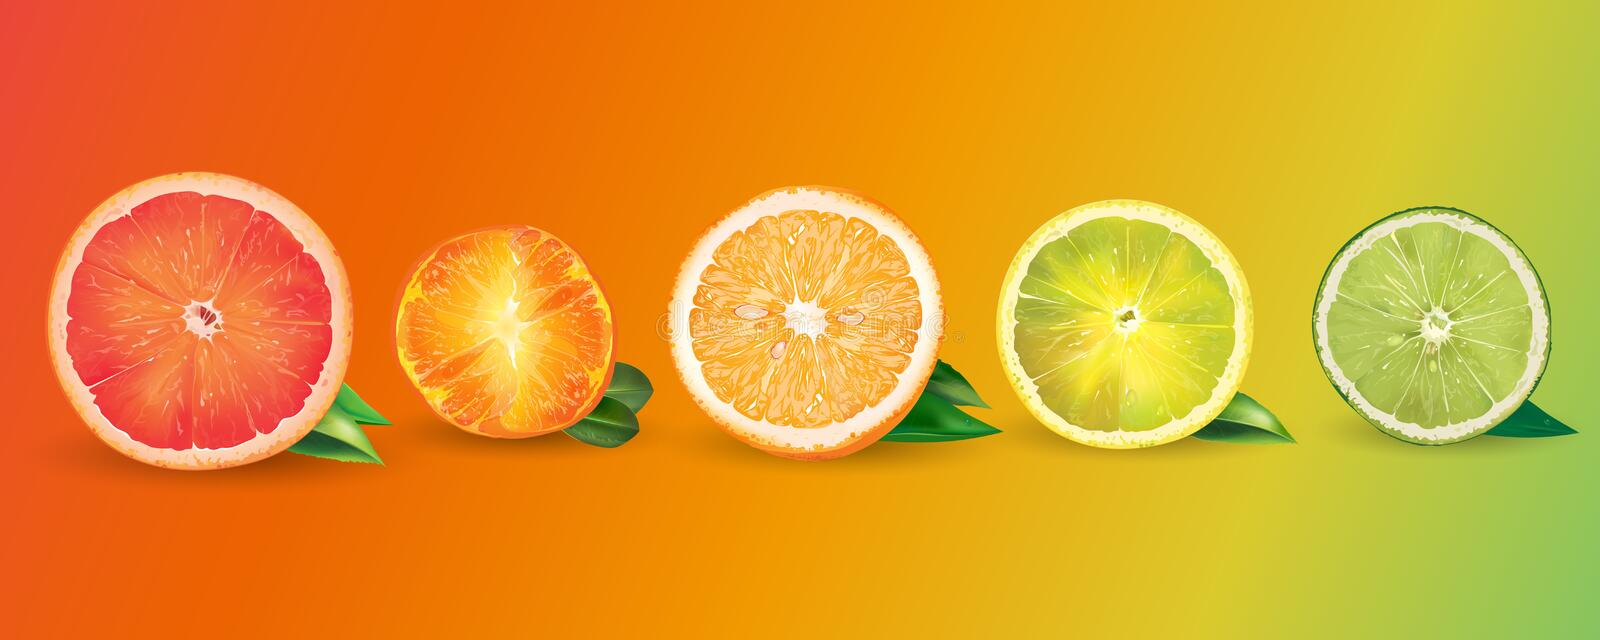 Orange, citron, agrume, mandarine, pamplemousse et chaux illustration de vecteur